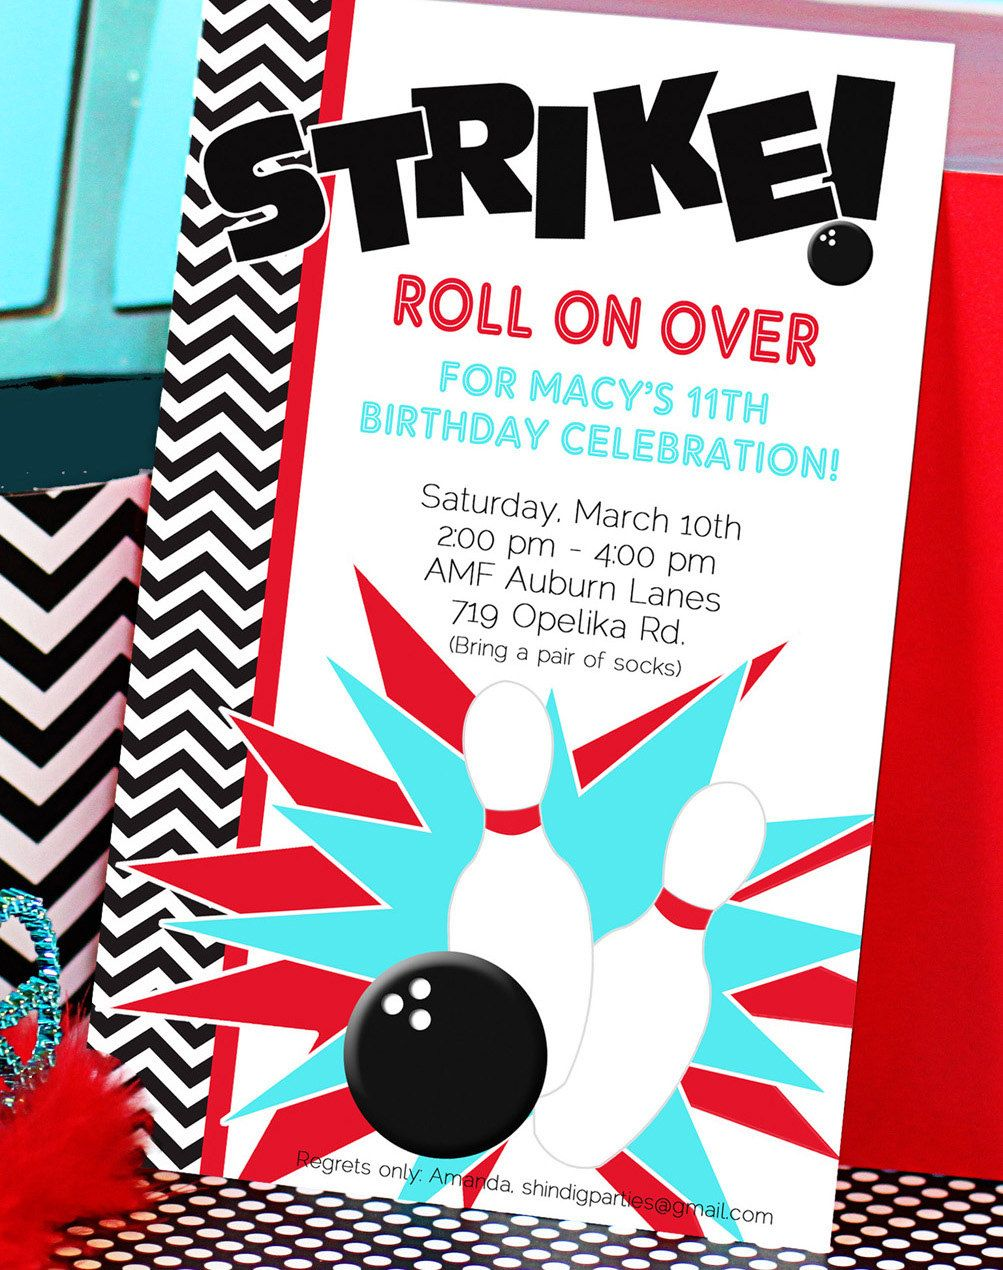 Bowling party invitation bowling birthday invitation by amandas bowling party invitation bowling birthday invitation by amandas parties to go 1400 via pronofoot35fo Images